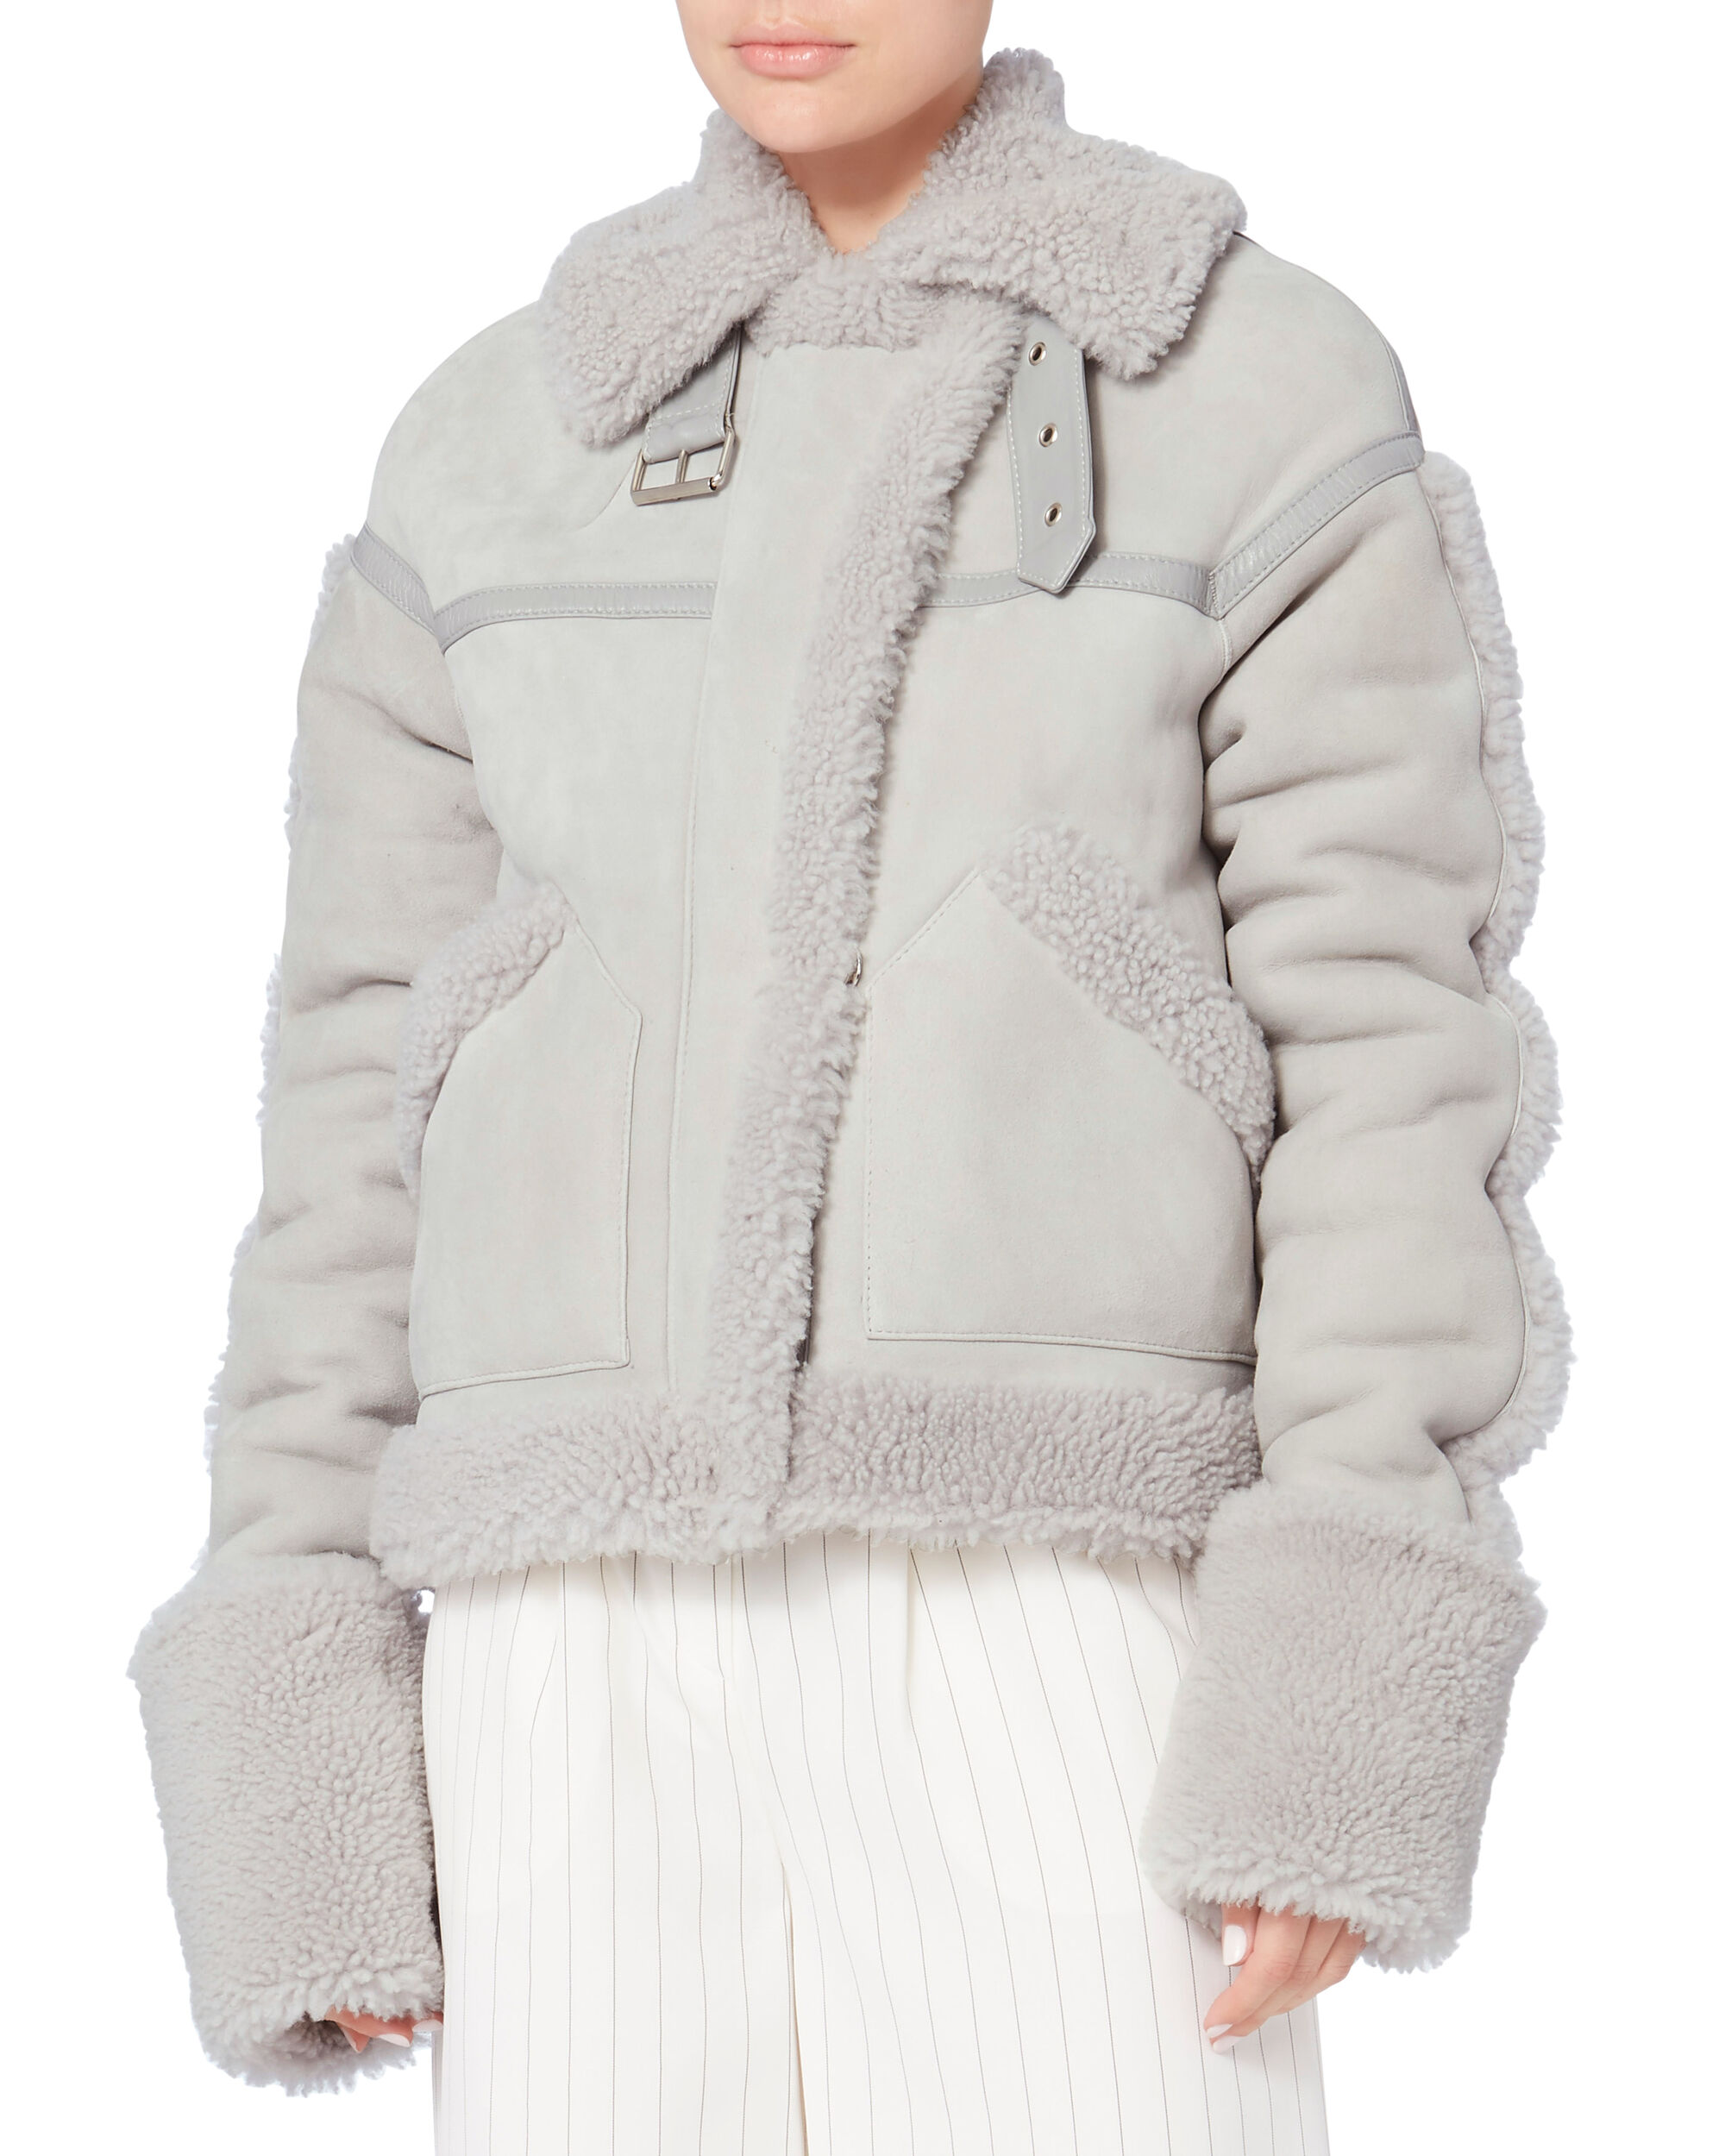 Oversized Shearling Coat, GREY, hi-res